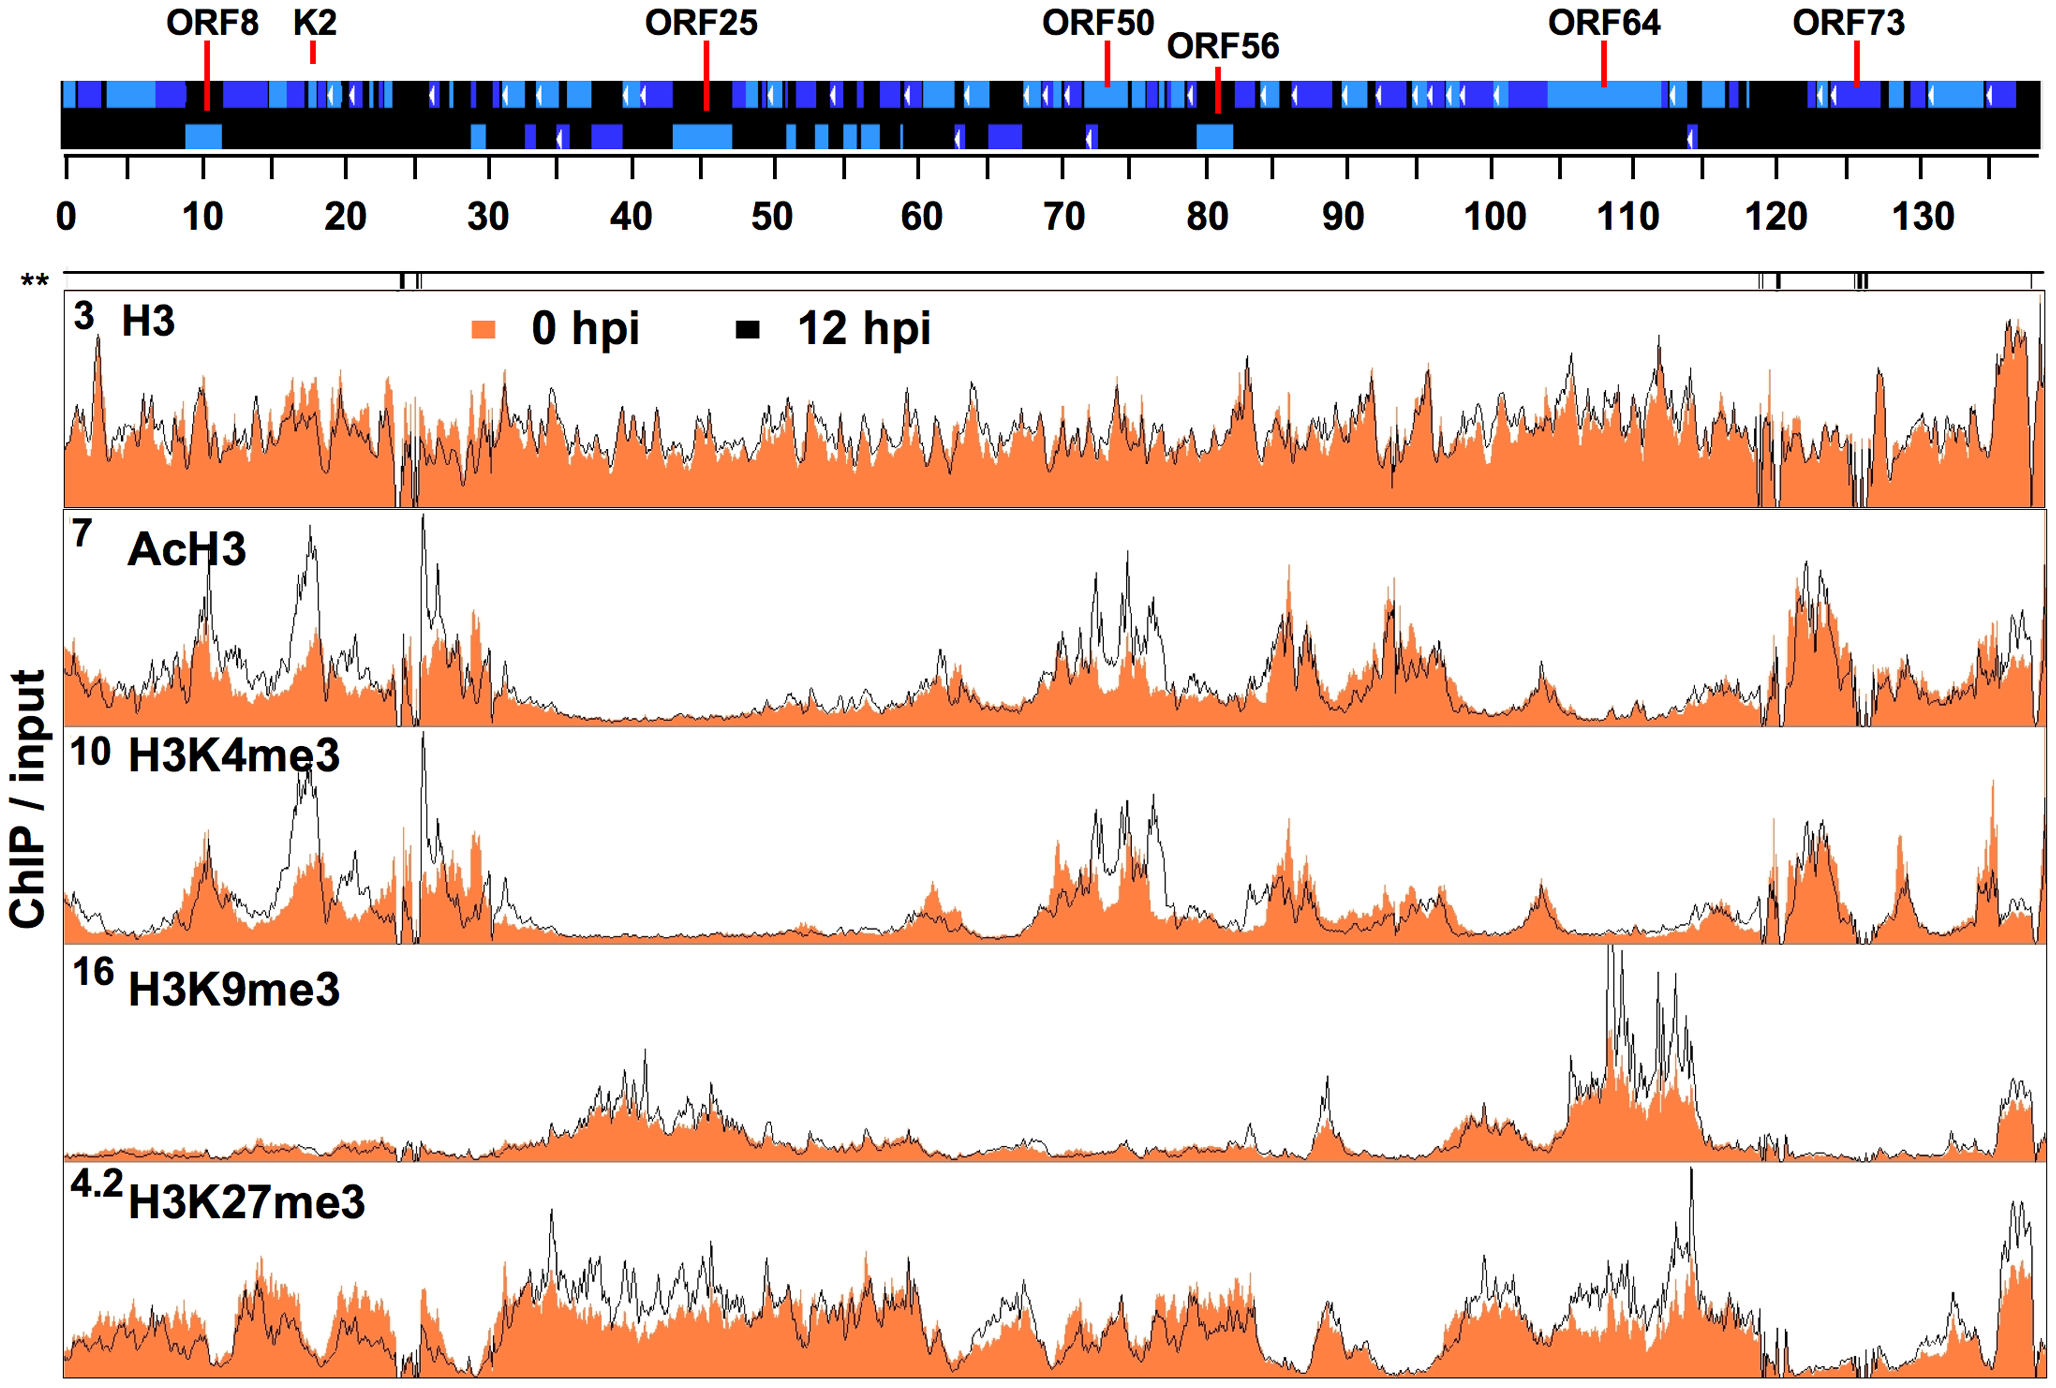 Genome-wide mapping of histone modifications on the KSHV genome during latency and reactivation.